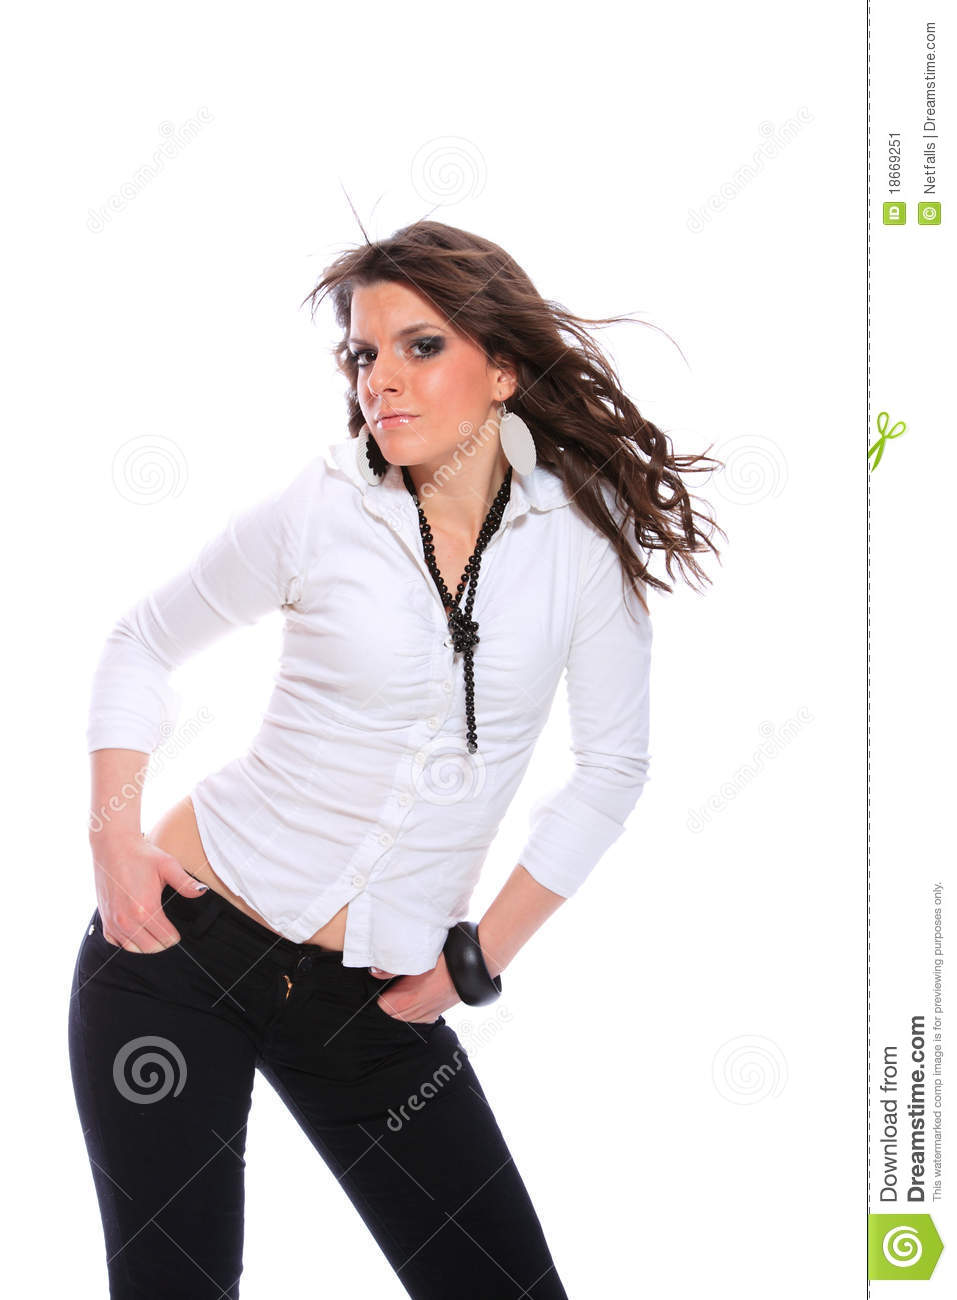 Pregnant Young Woman In A White Shirt Stock Photo - Image